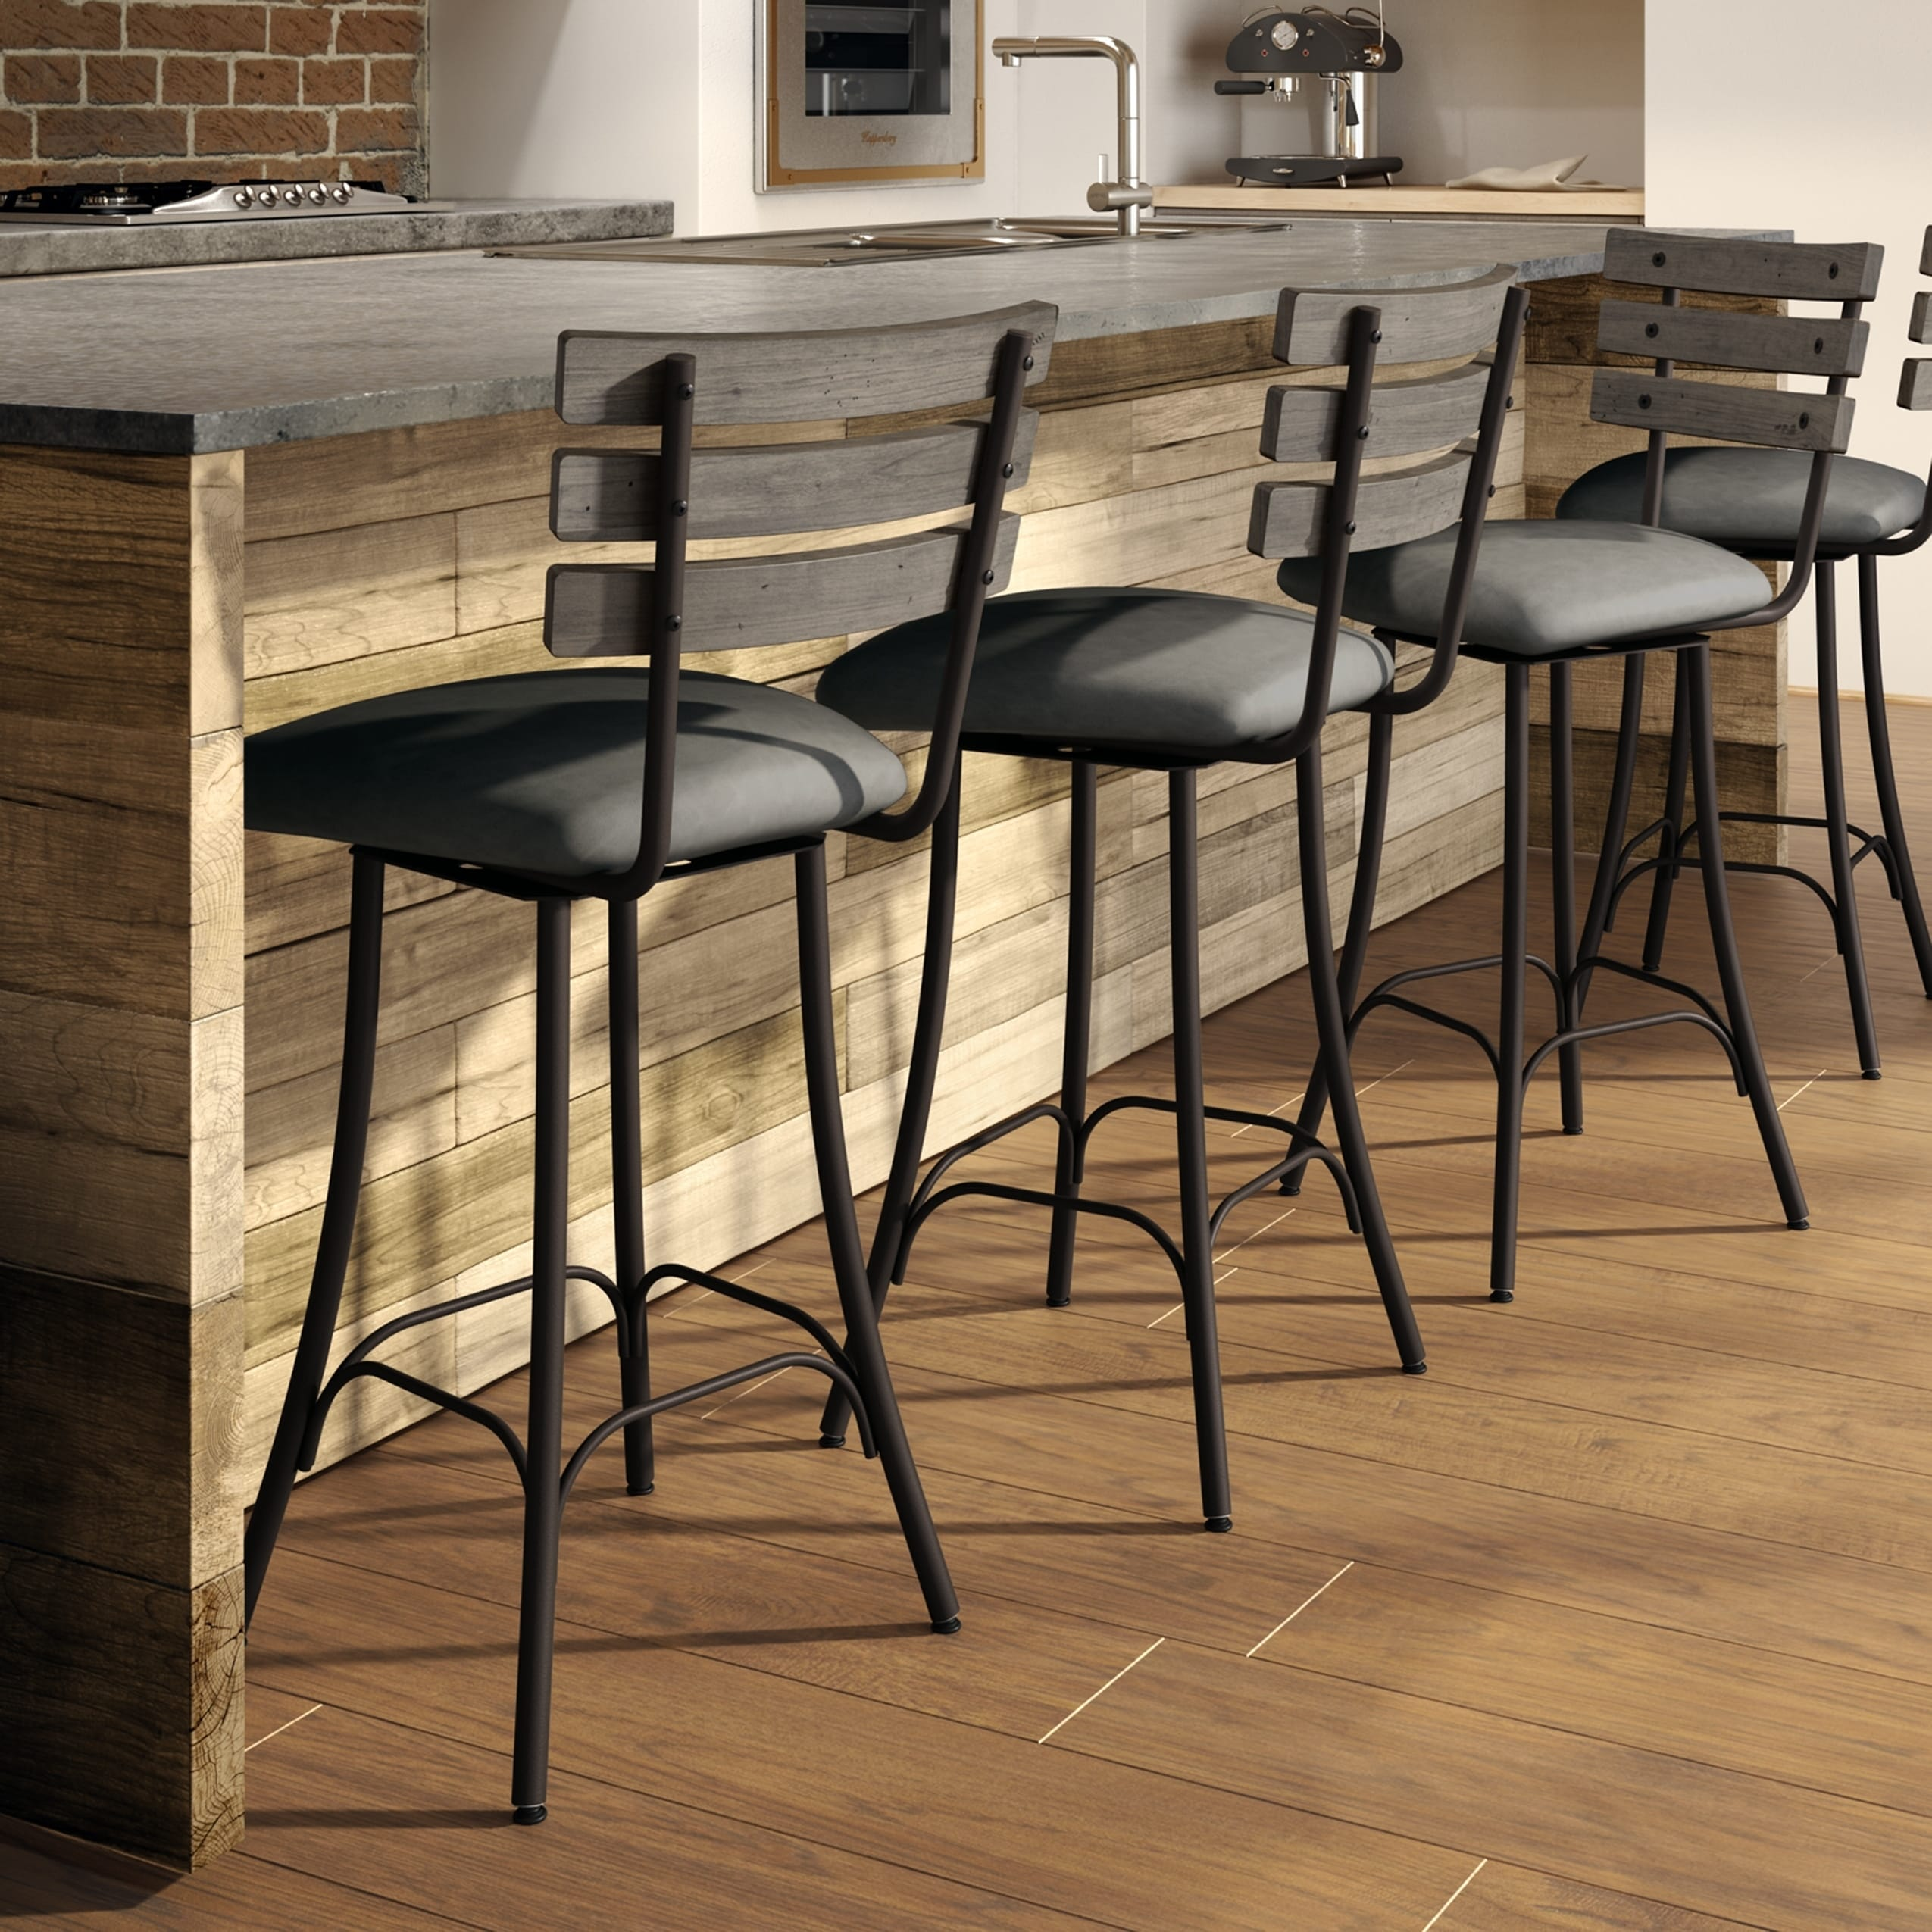 Swell Carbon Loft Kettering Swivel Metal And Wood Counter Stool Pabps2019 Chair Design Images Pabps2019Com